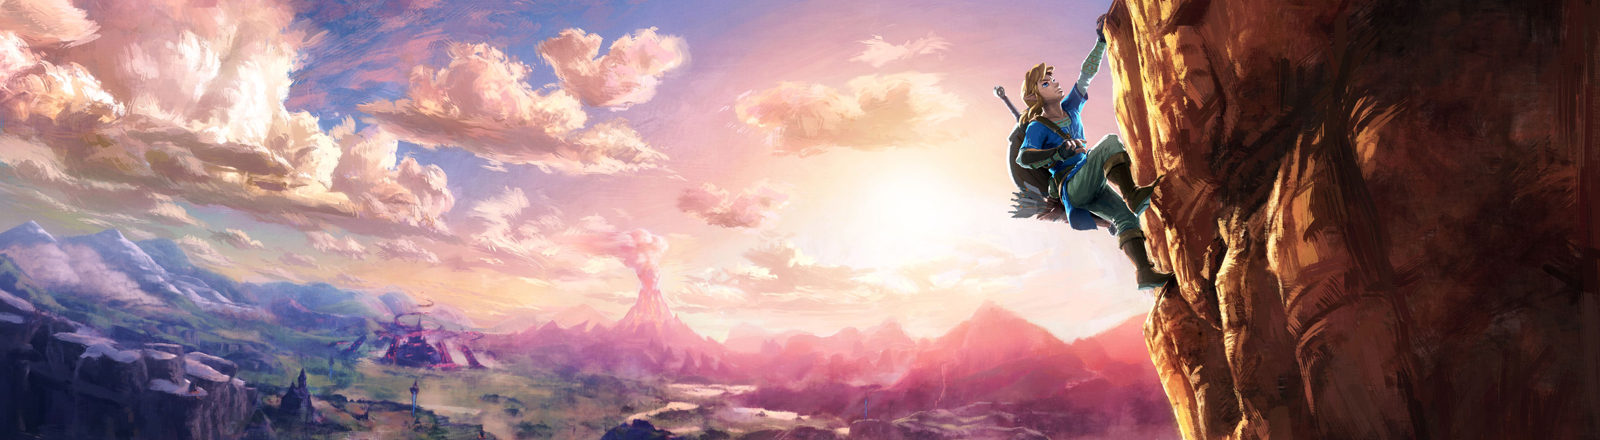 "Ein Artwork aus dem Computerspiel ""Zelda - Breath of the Wild""."